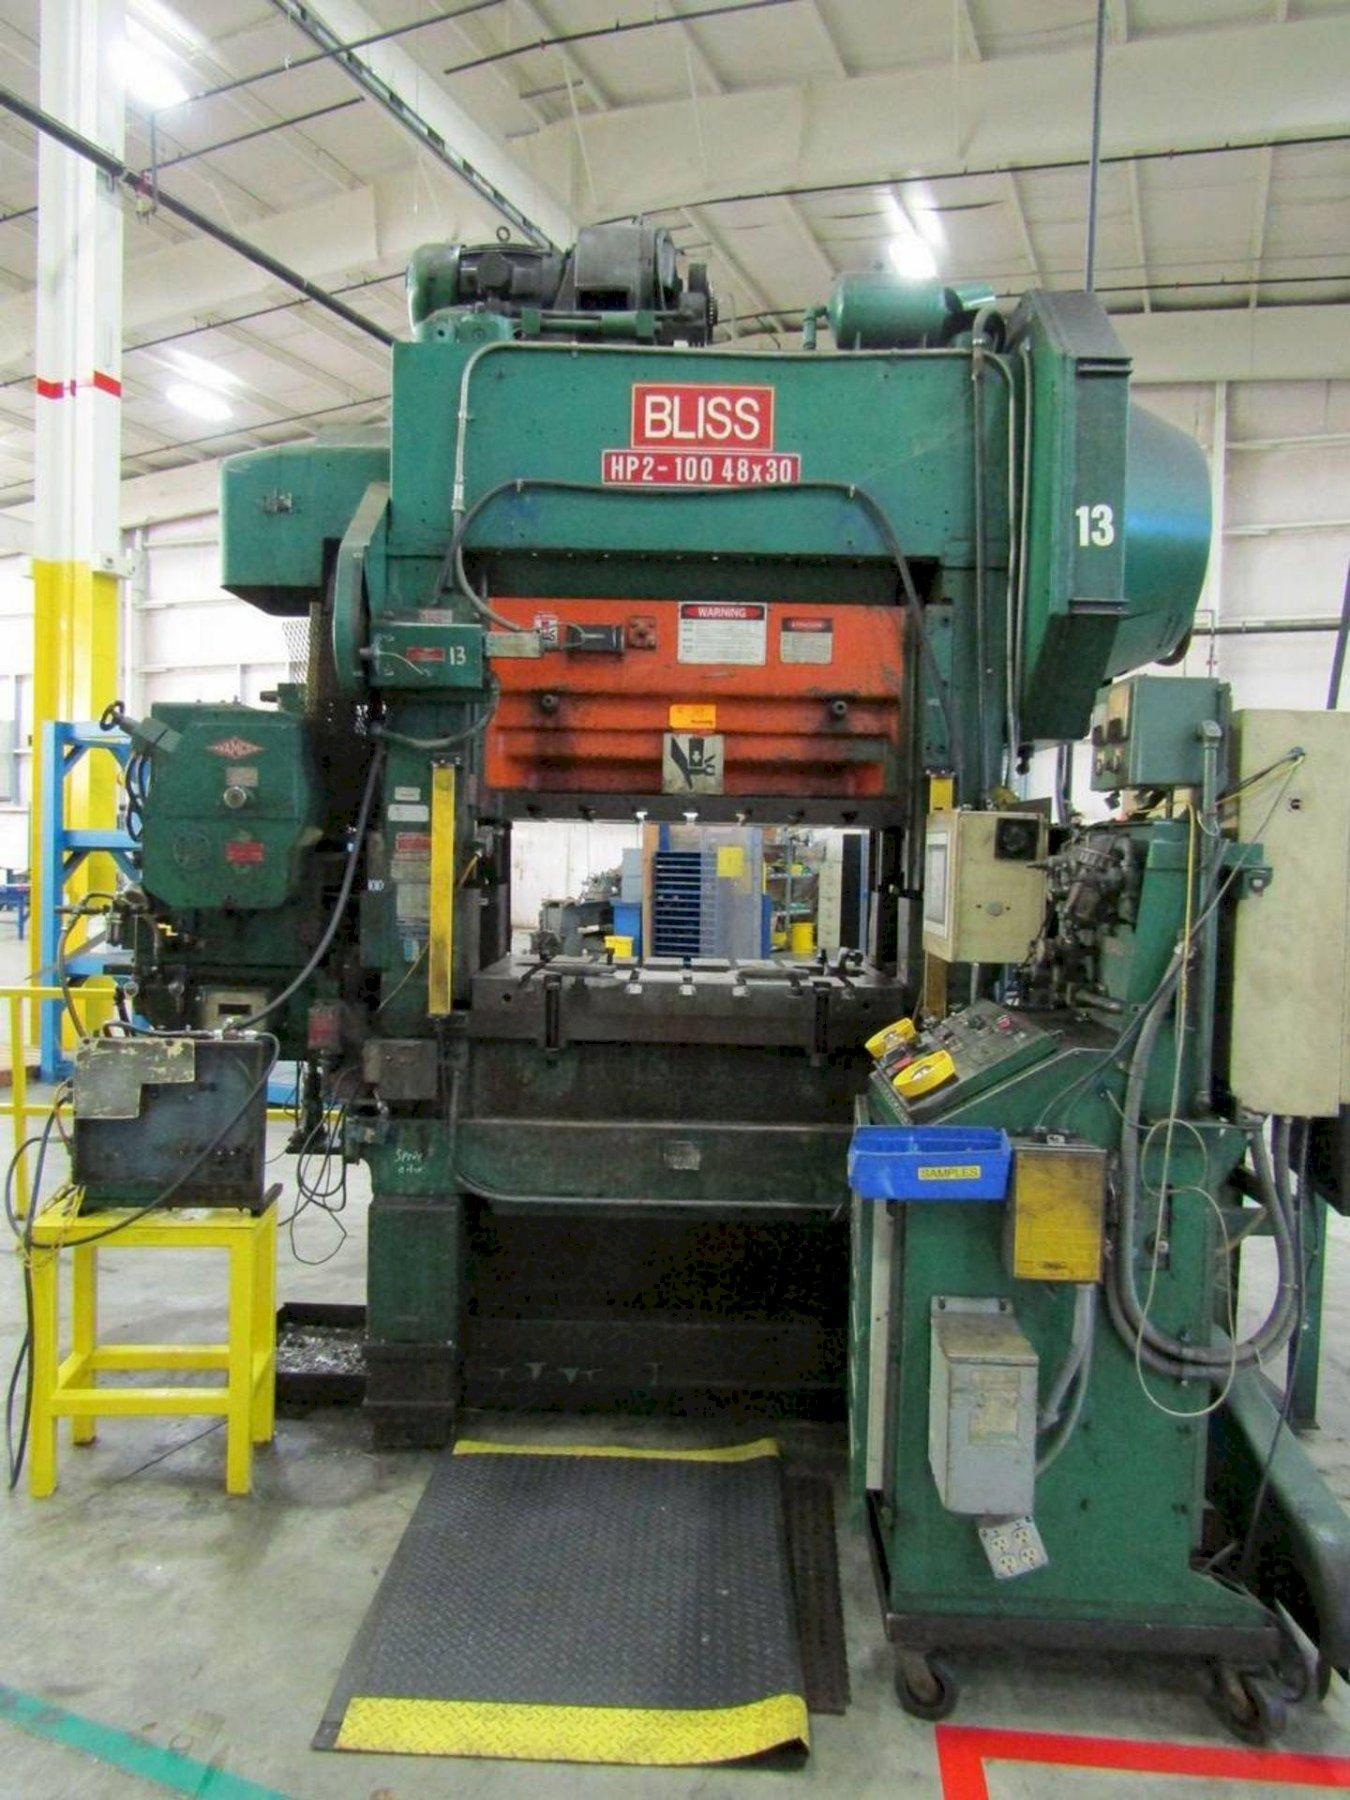 100 ton Bliss HP2-100-48-30 High Speed Press